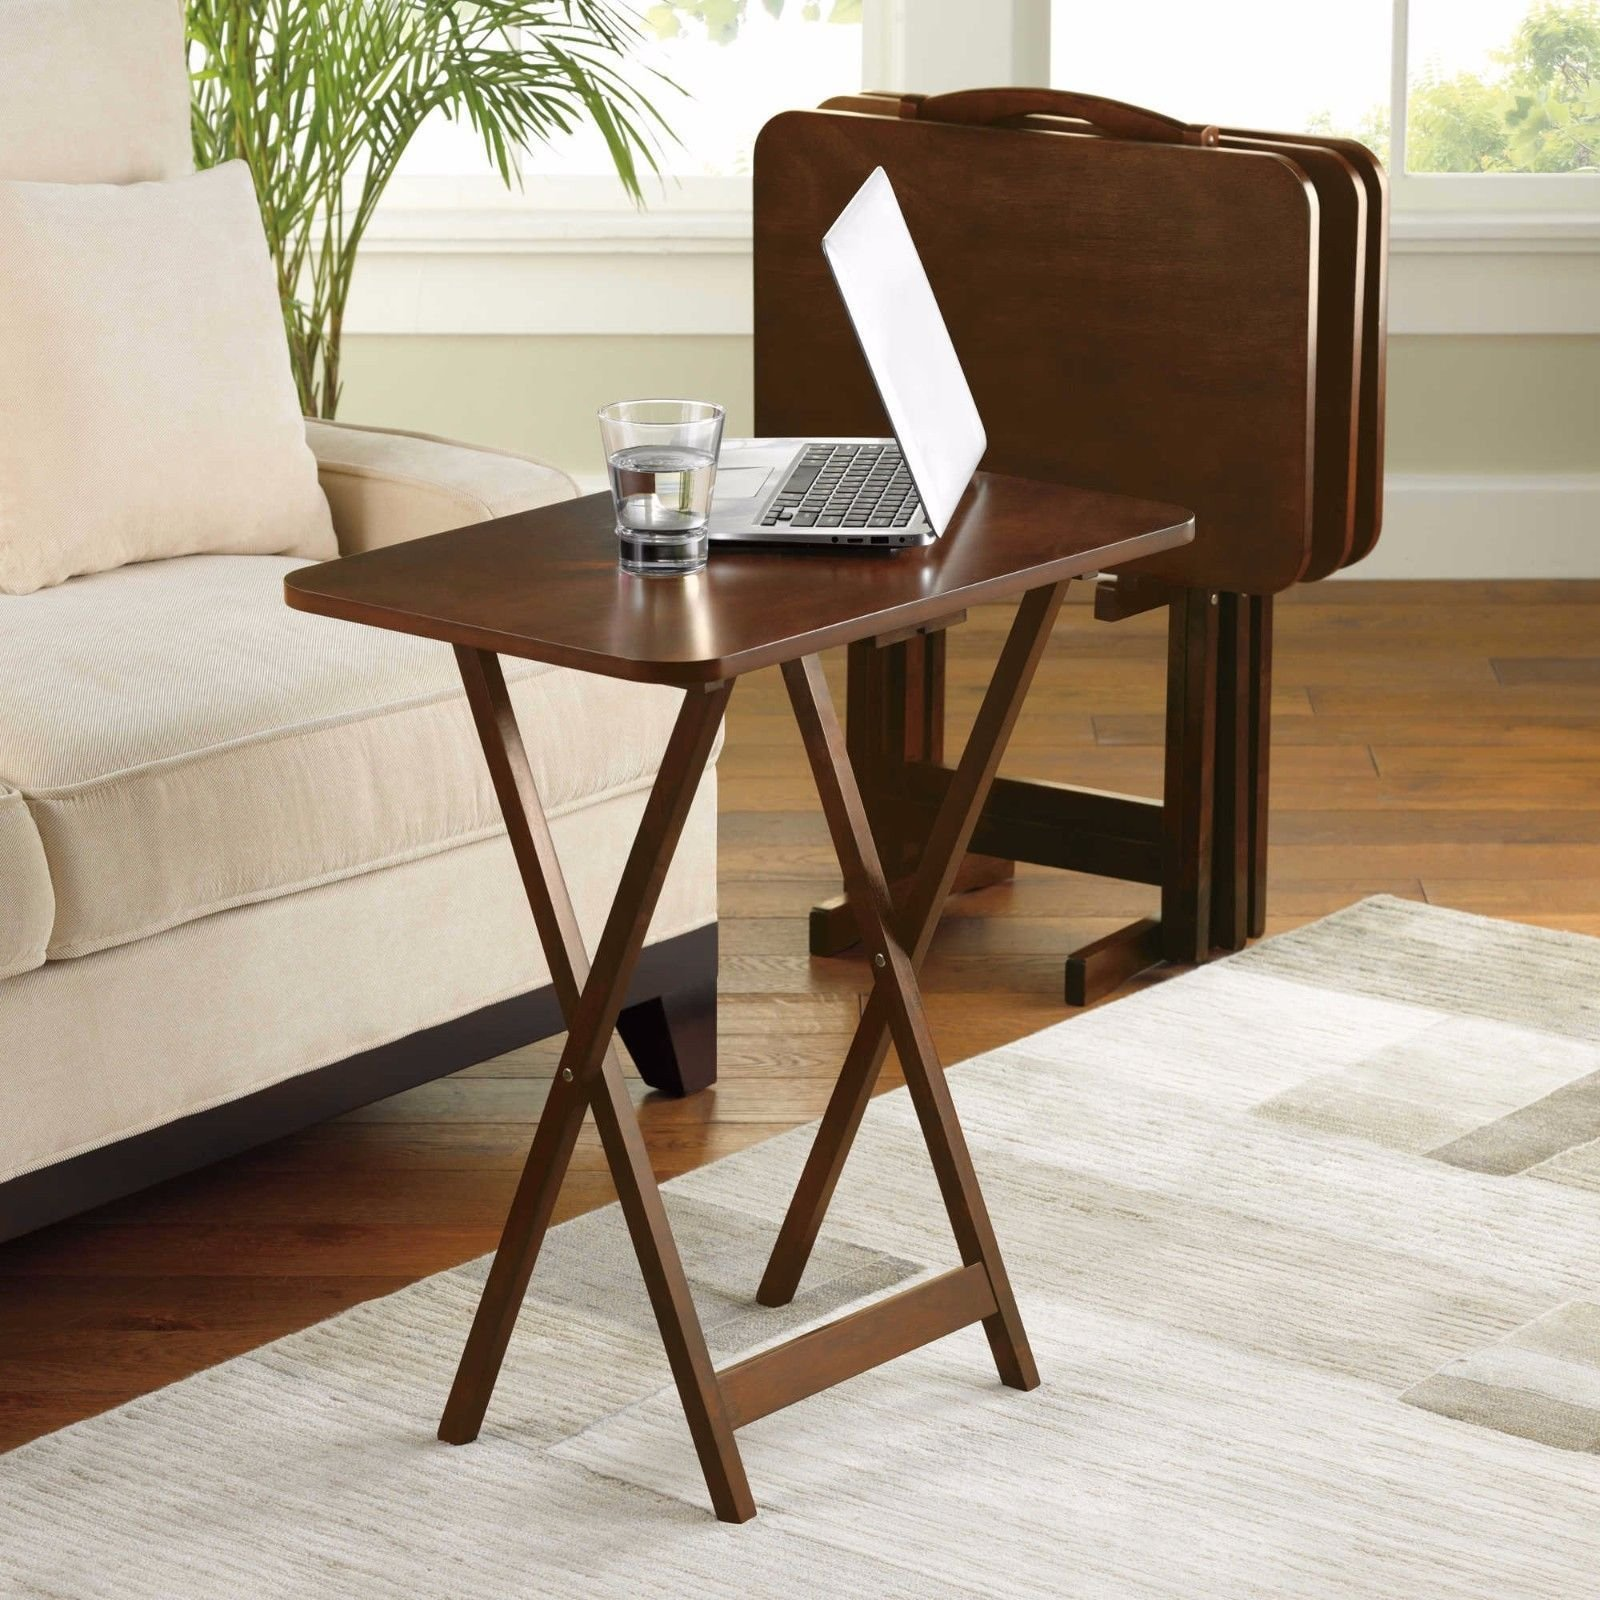 table target arm under ikea beautiful slide or of couch image sofa laptop for tray